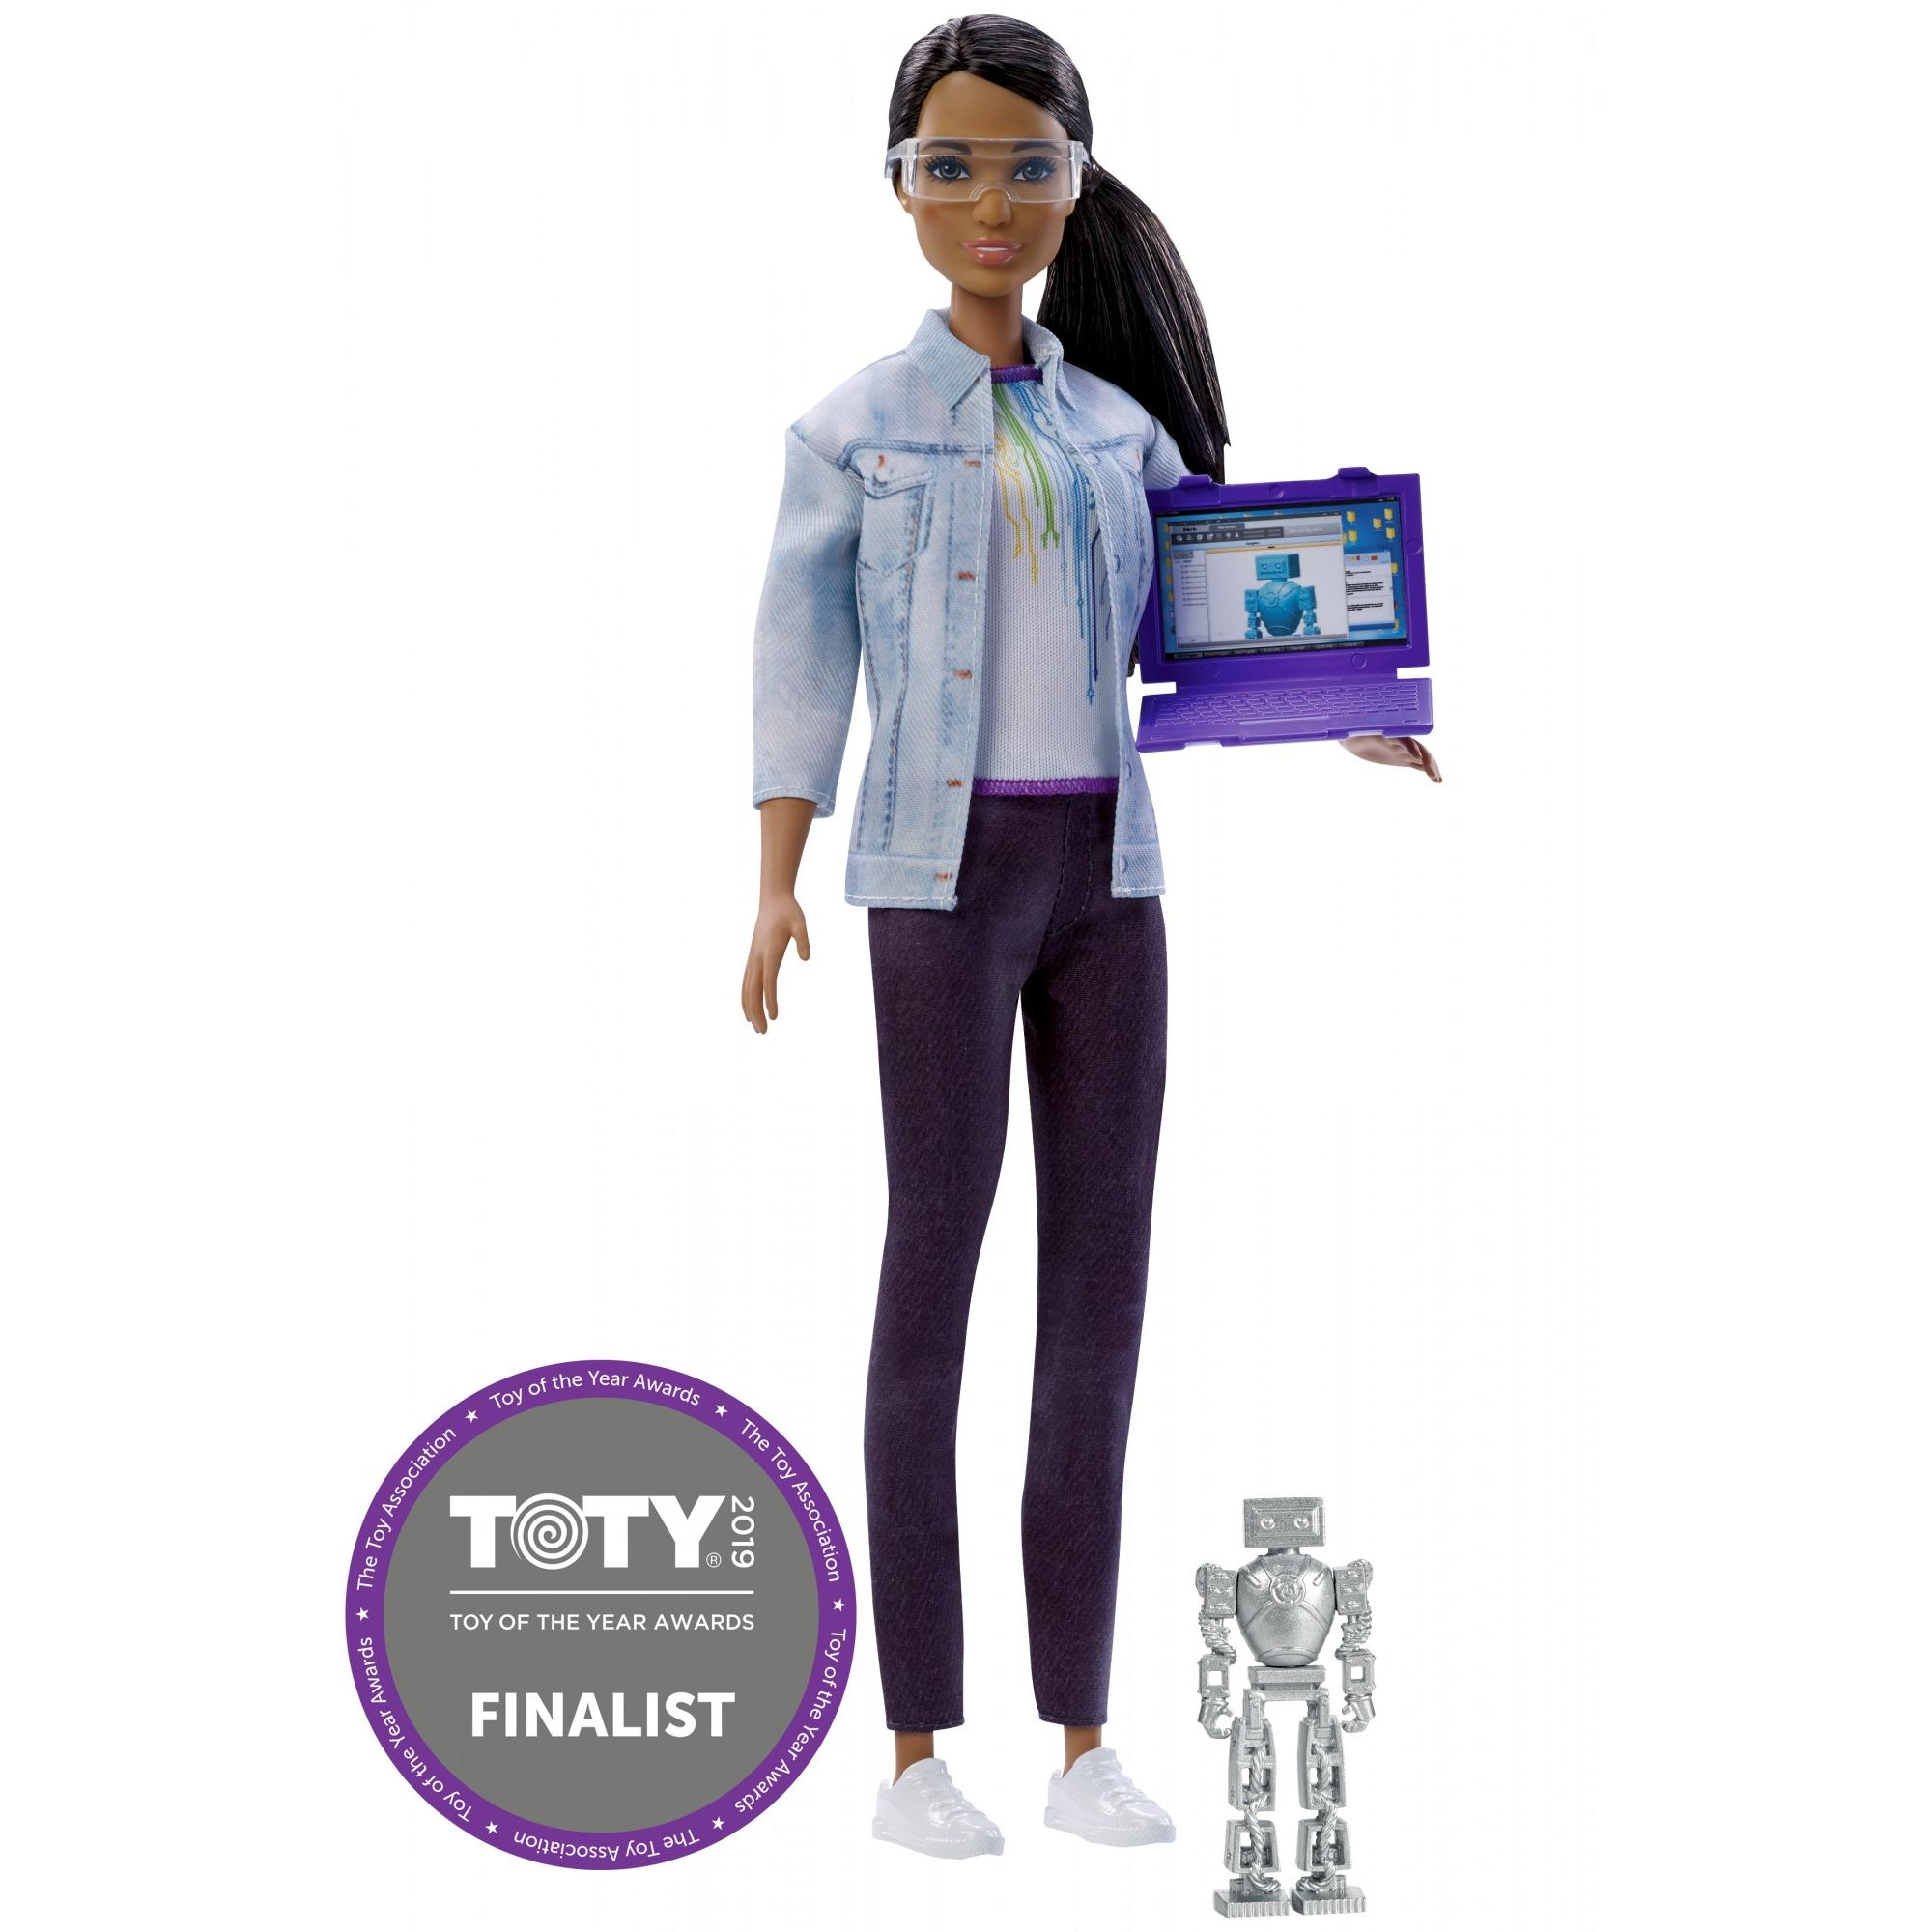 Barbie Career Robotics Engineer Doll, Brunette, with Laptop & Robot